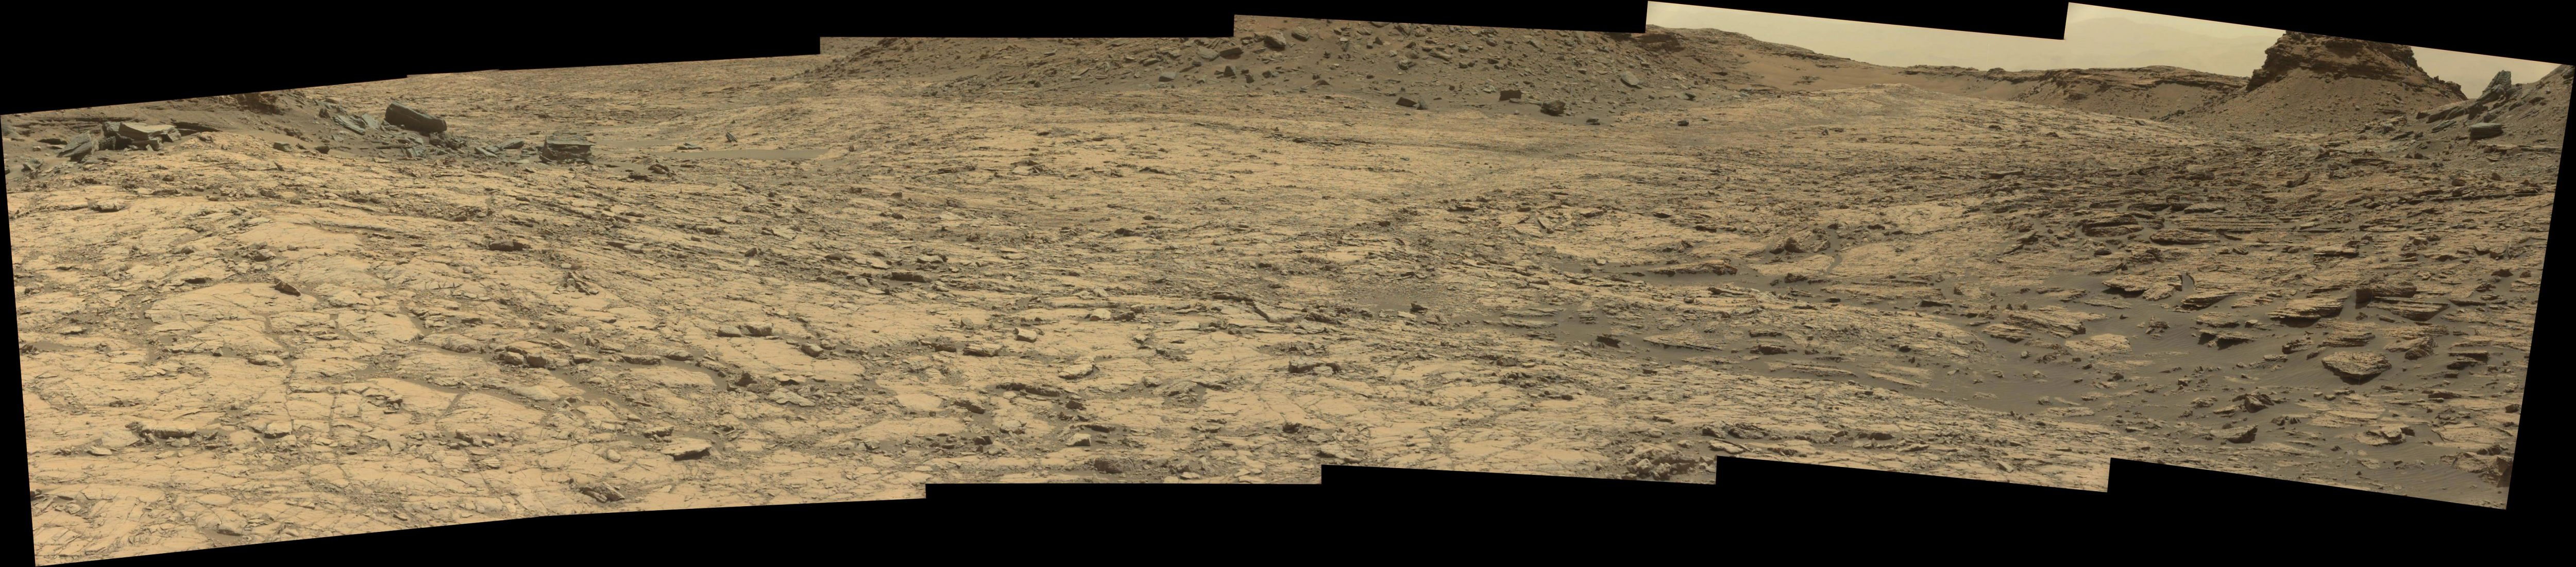 panoramic curiosity rover view 2 - sol 1428 - was life on mars